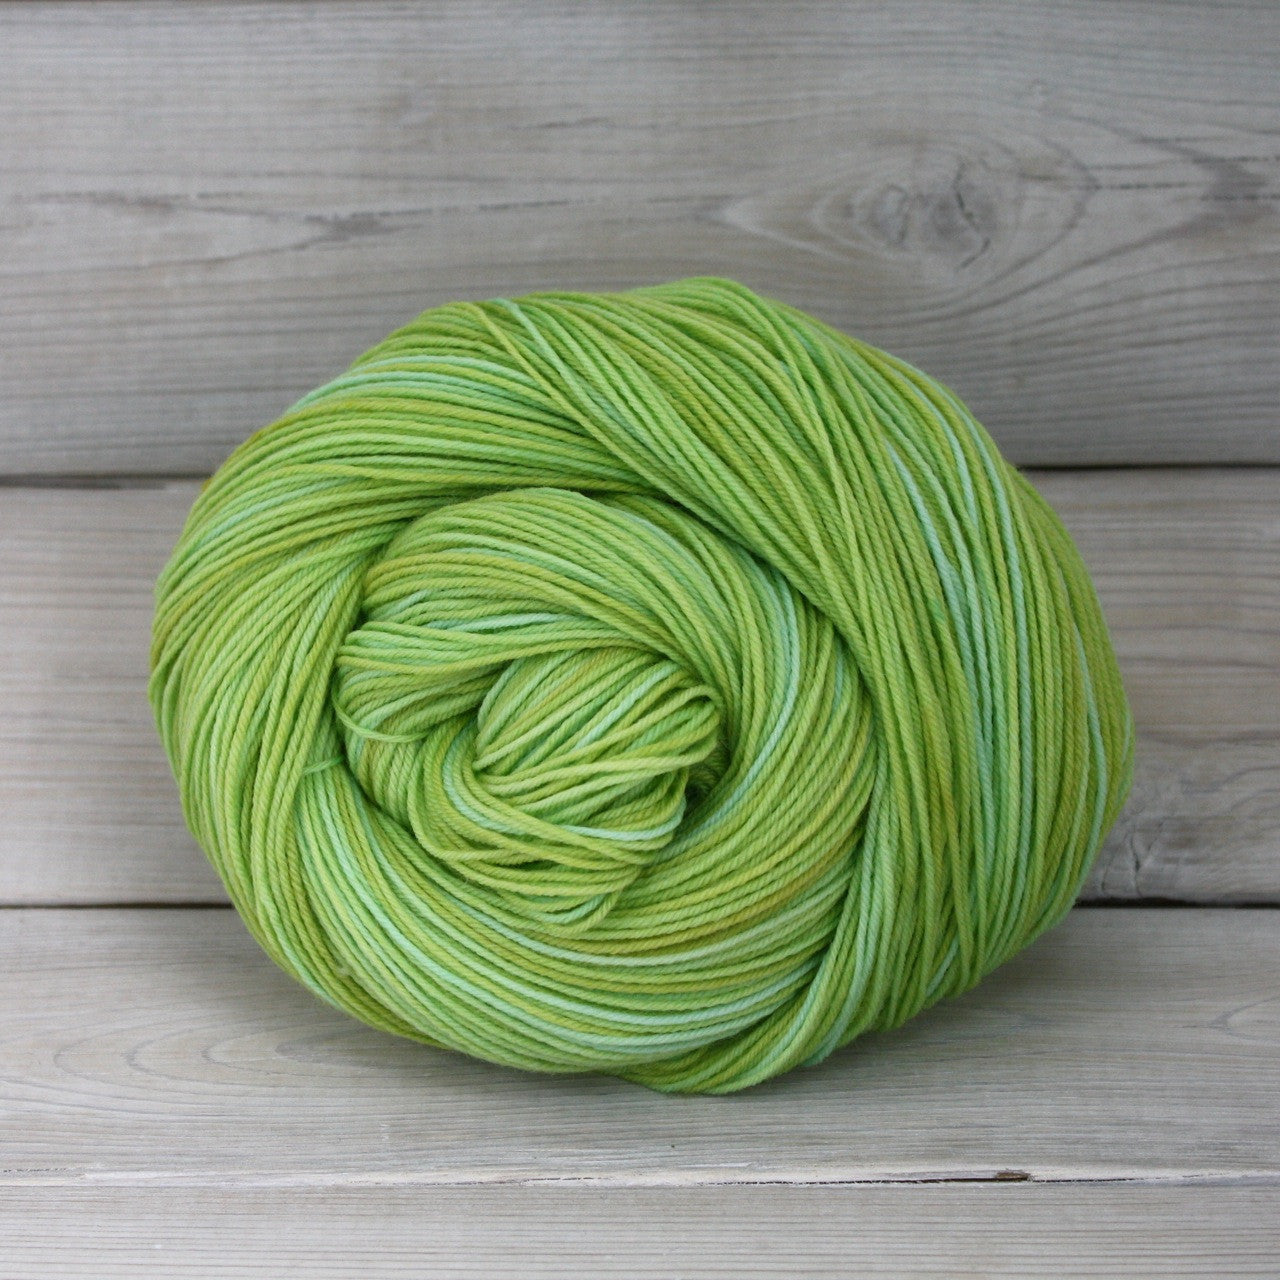 Colorway: Bahama Village | Dyed to Order Yarn